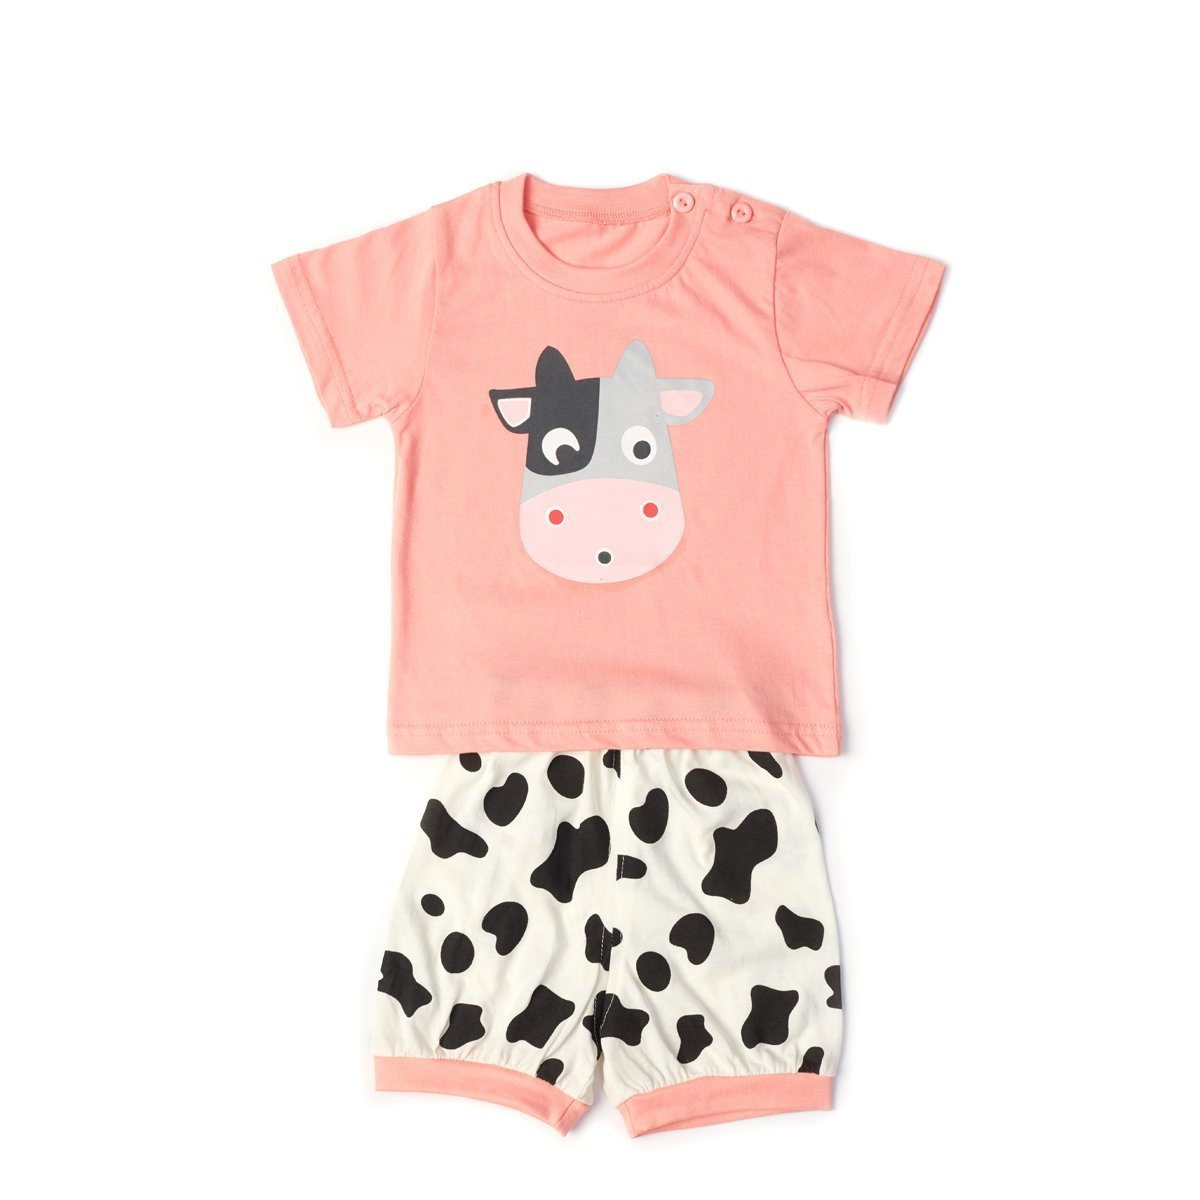 Baby Clothes Sets Infant Outifts Toddler Short Sleeve Shirt + Pants Animals Dows (Summer) (0-6 Months)